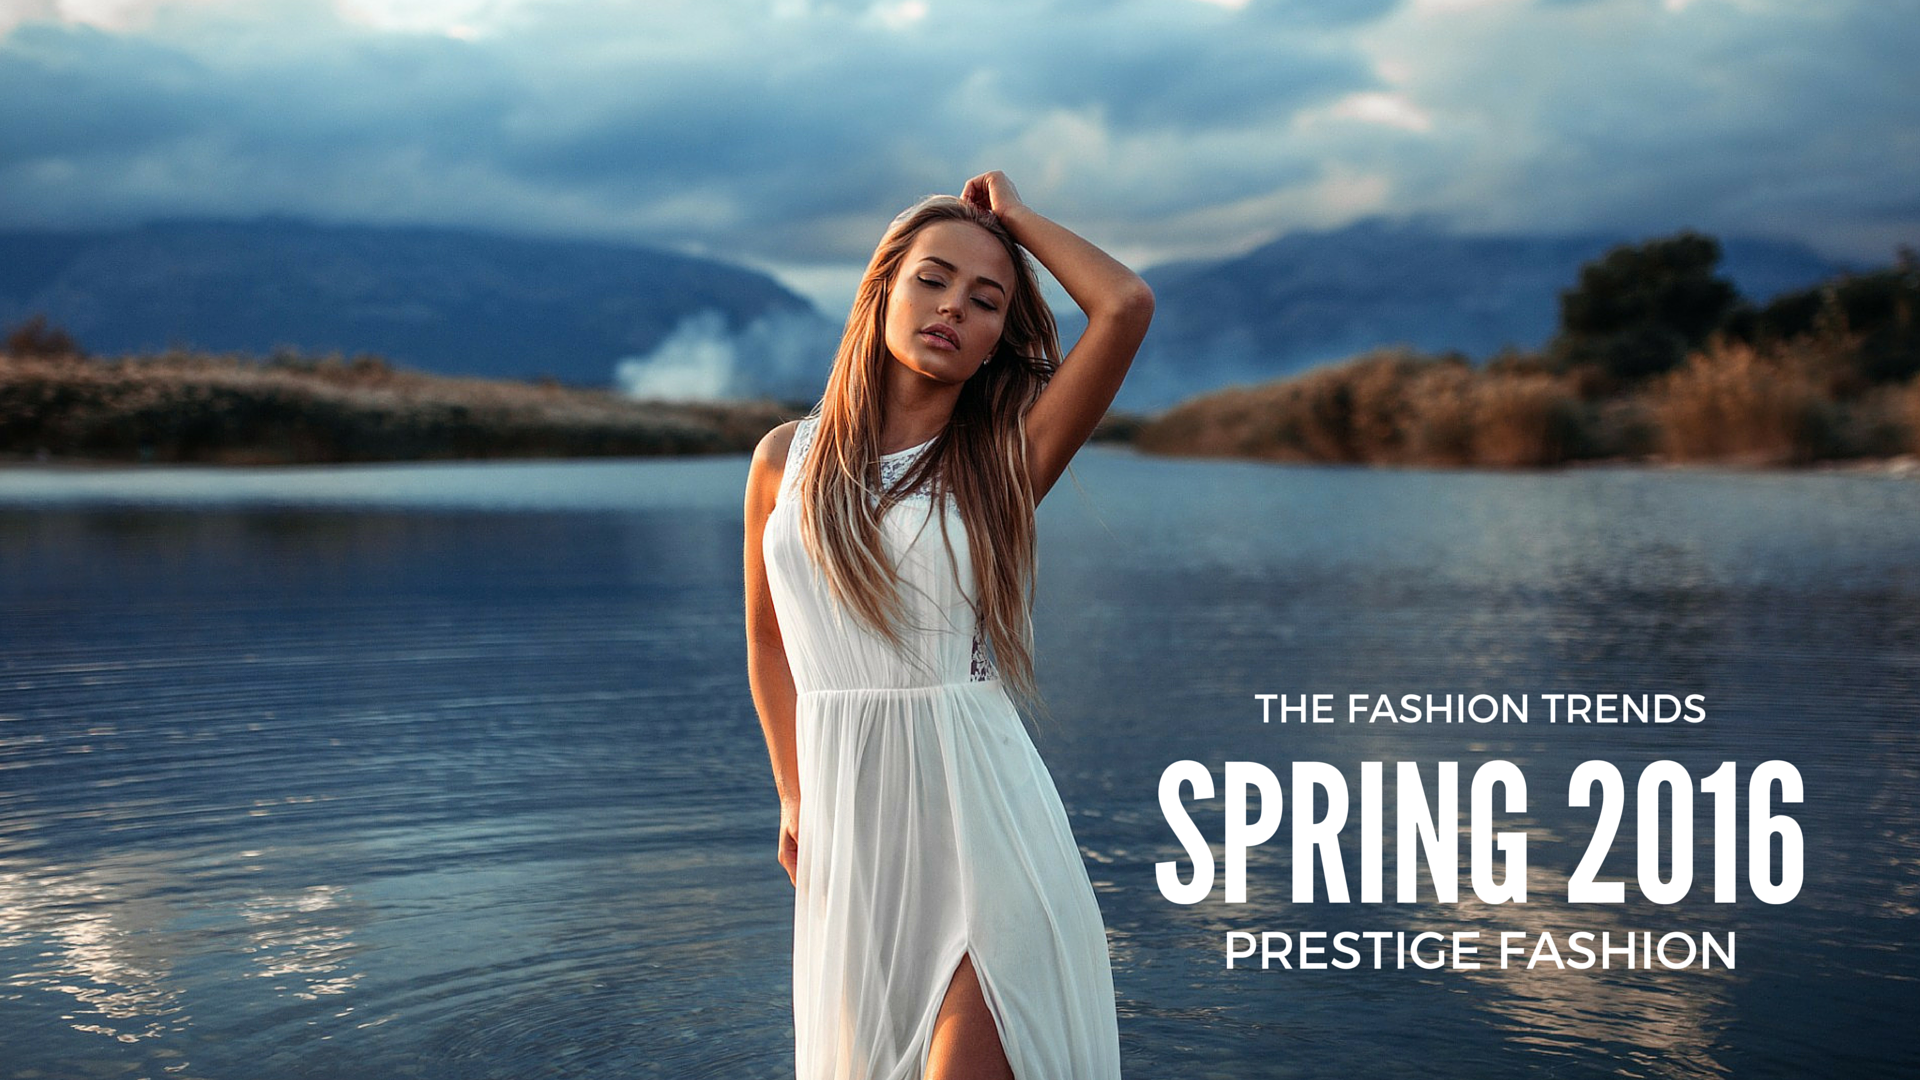 Ανοιξη Καλοκαίρι 2016 - Τα fashion trends - Prestige Fashion a617e7b1b4a